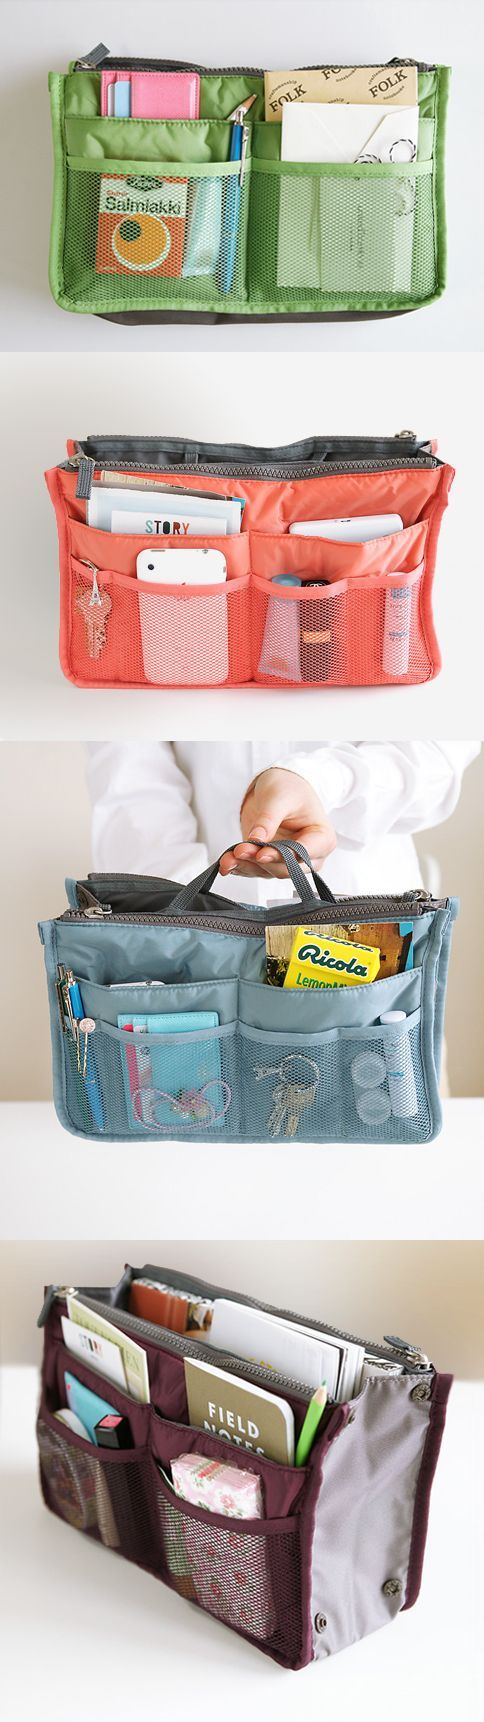 The best way to organize any tote bag or purse for work! Includes large pockets big enough for items like an iPad or planner, as well as tons of smaller pockets and pouches for other times. No more time wasted digging around in your bag for loose items! A hidden handle makes for easy removal from your bag.